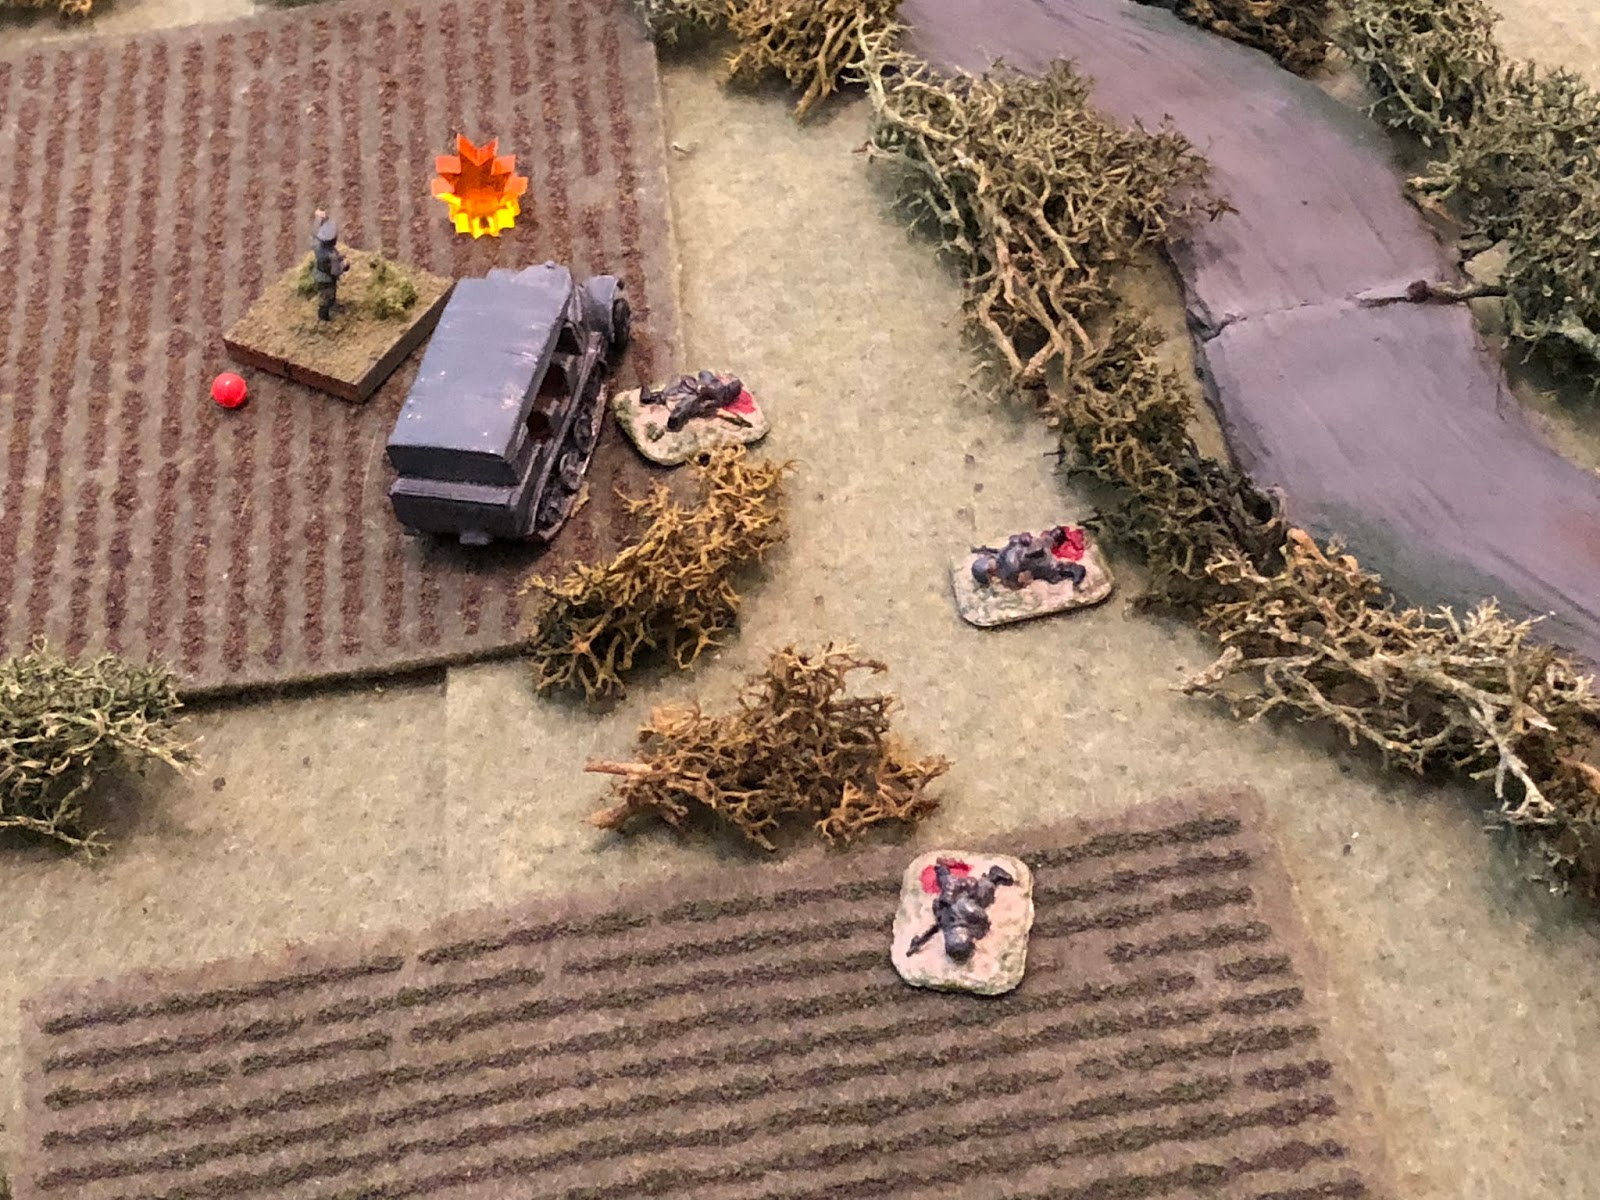 Lt Klugmann is suppressed as Captain Freitag falls, seriously wounded!